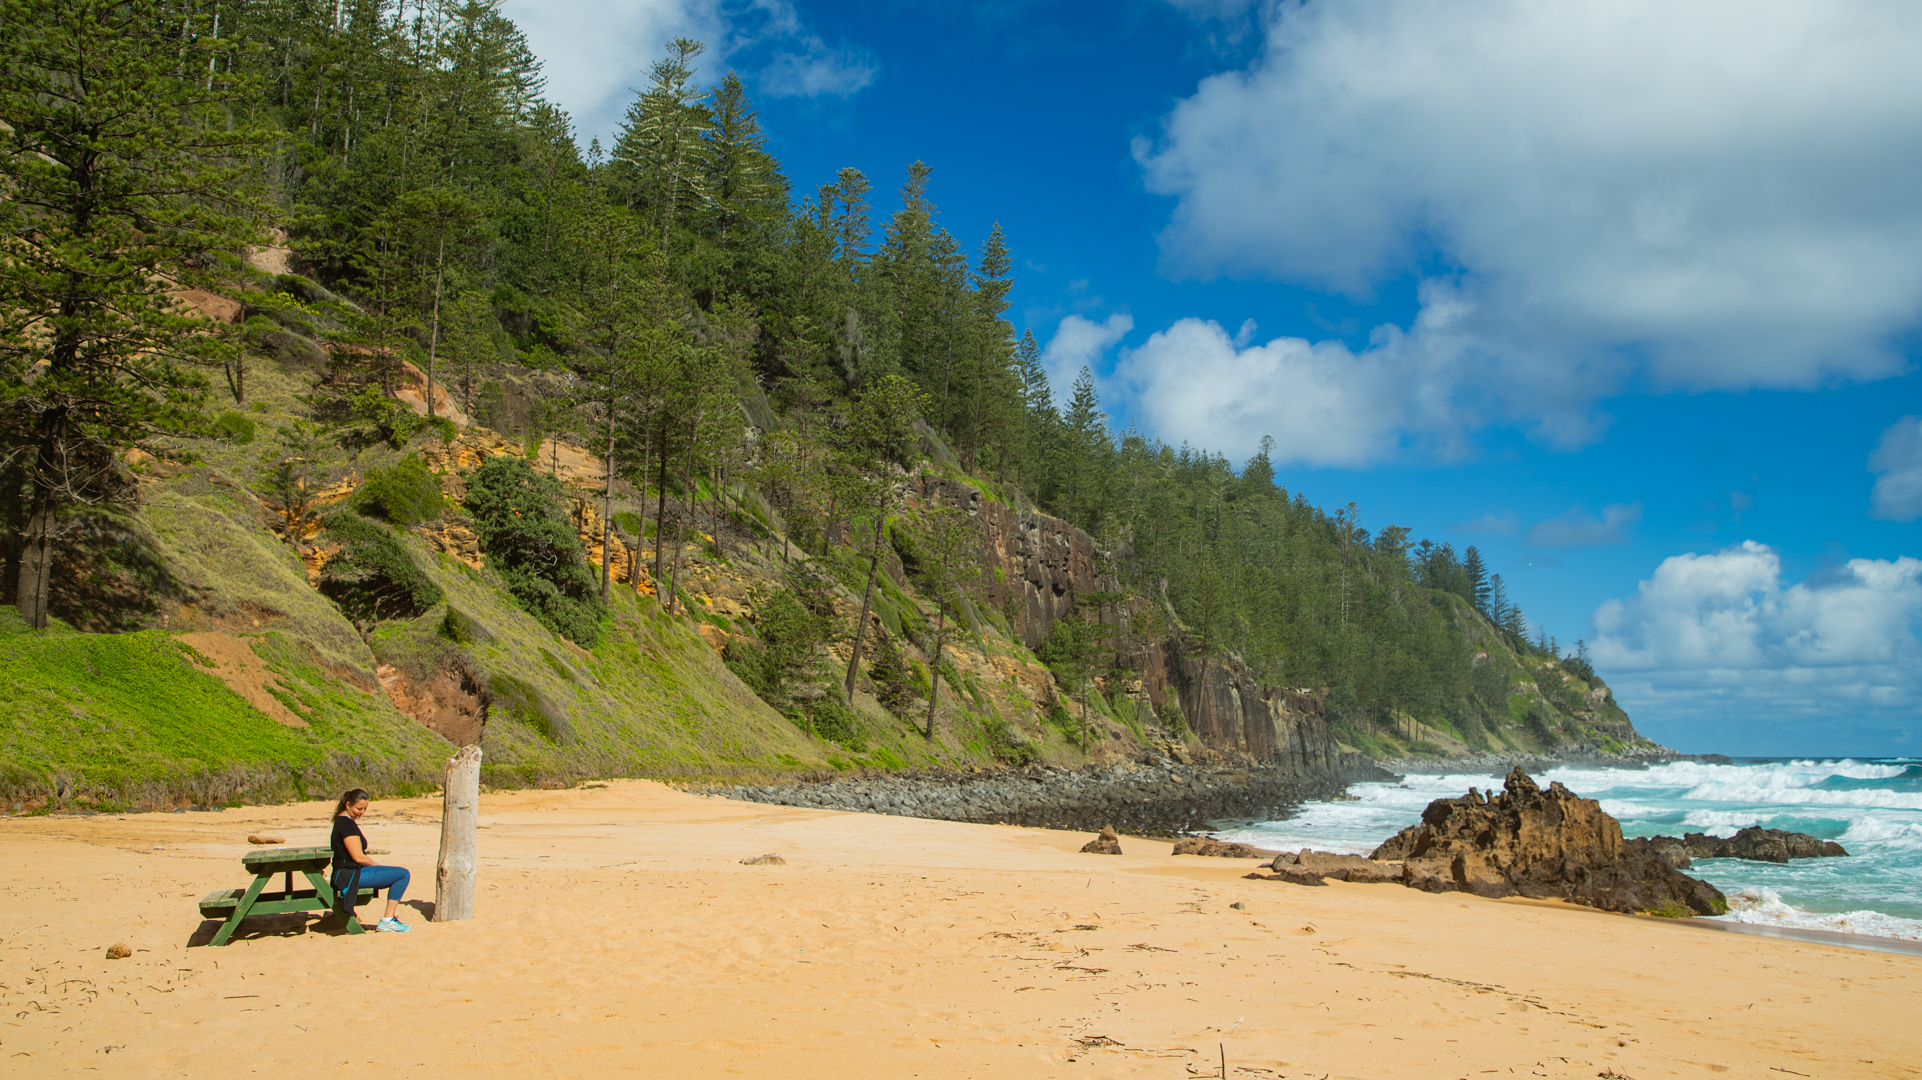 A woman sits at a picnic table set on the sand. Waves come into shore and a pine tree-covered cliff comes down to meet the sea.